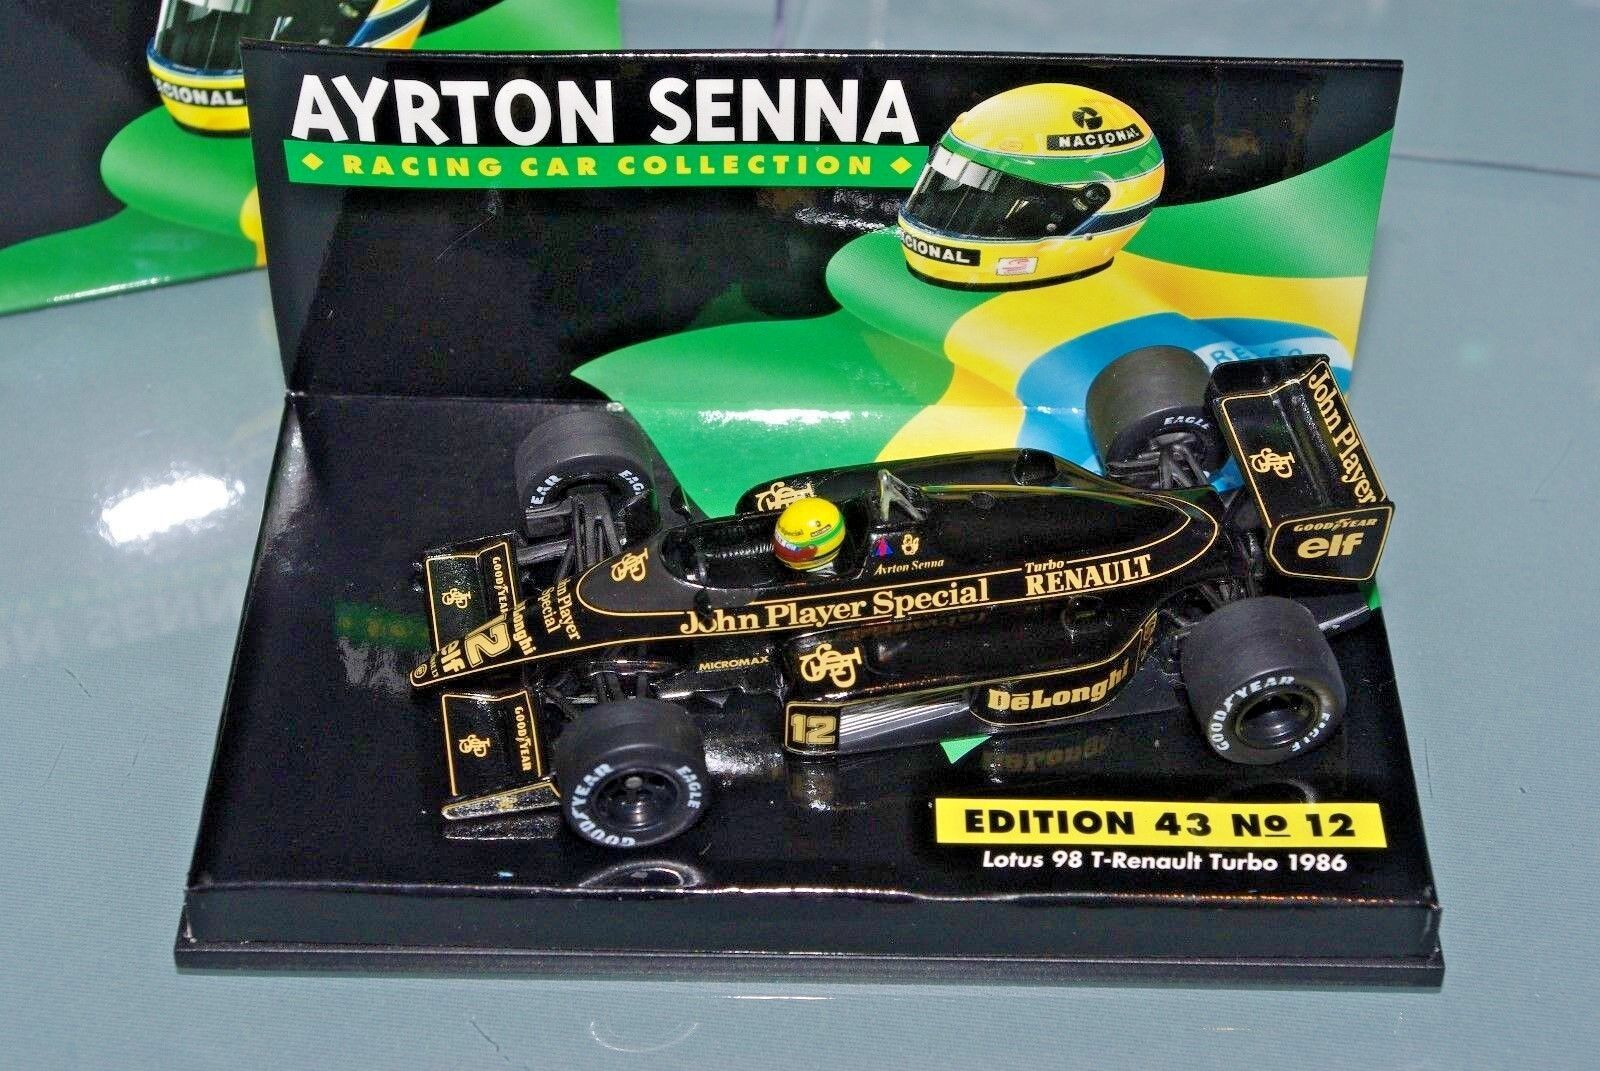 MINICHAMPS 1 43 LOTUS 98 T RENAULT JPS JOHN PLAYER SPECIAL SENNA COLLECTION  12